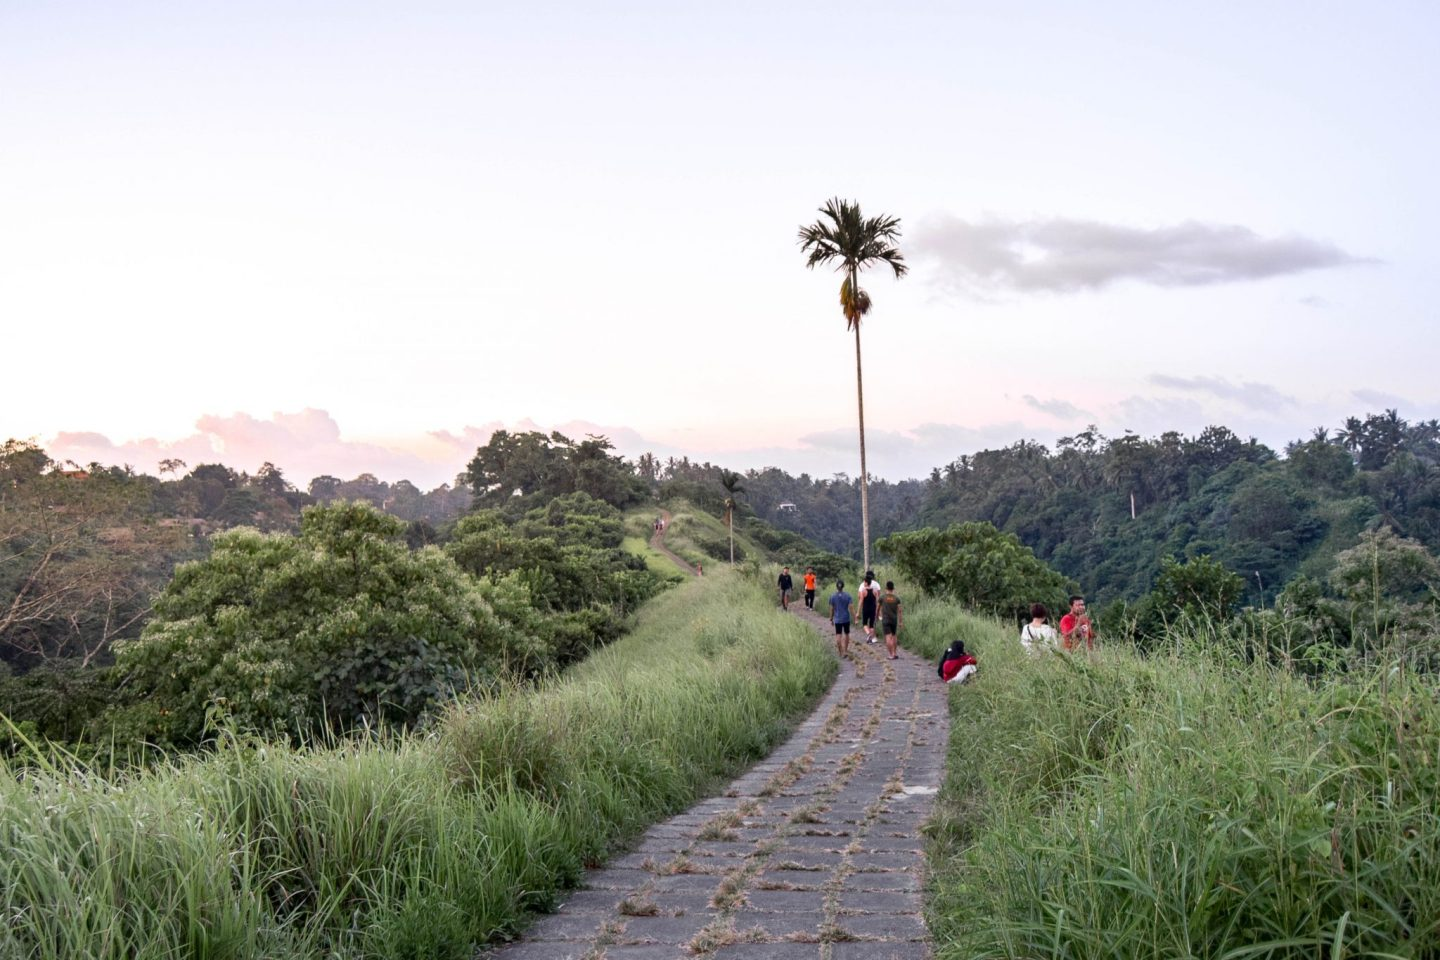 Wanderers & Warriors - Campuhan Ridge Walk Ubud - A Free & Easy Trek - Campuhan Ridge Walk Price - Things To Do In Ubud - Sunset at Campuhan Ridge Walk